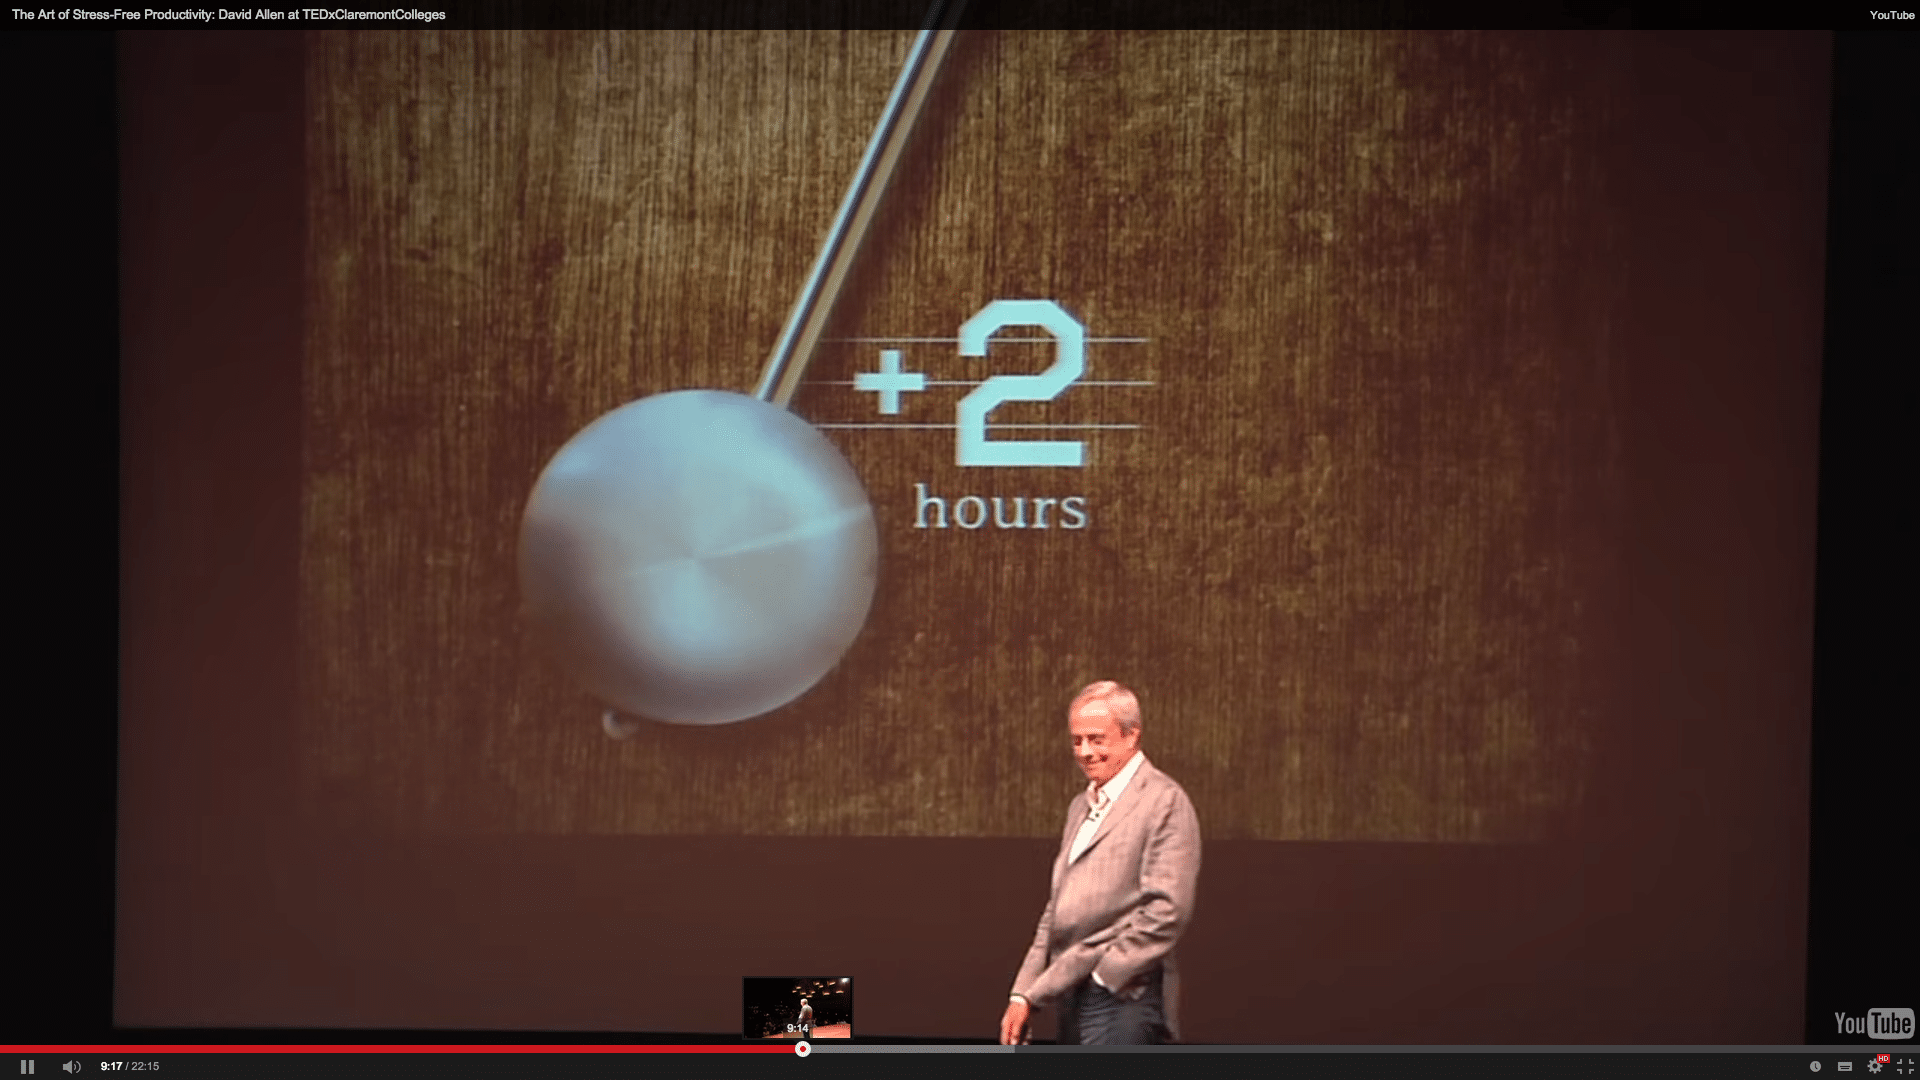 David Allen TED Talk plus 2 hours